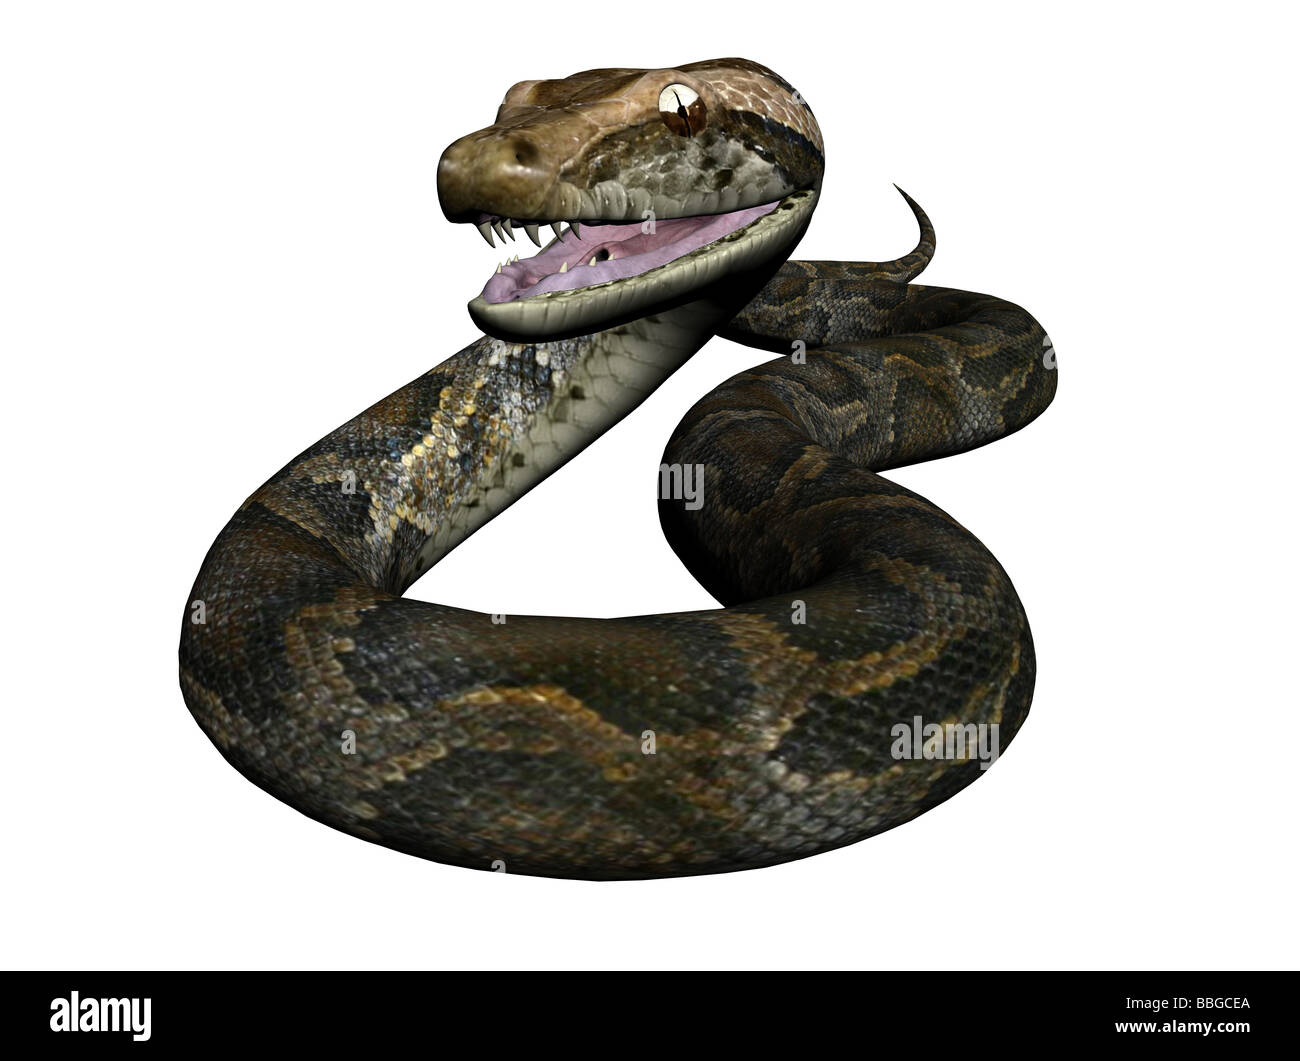 3D Illustration of a python - Stock Image